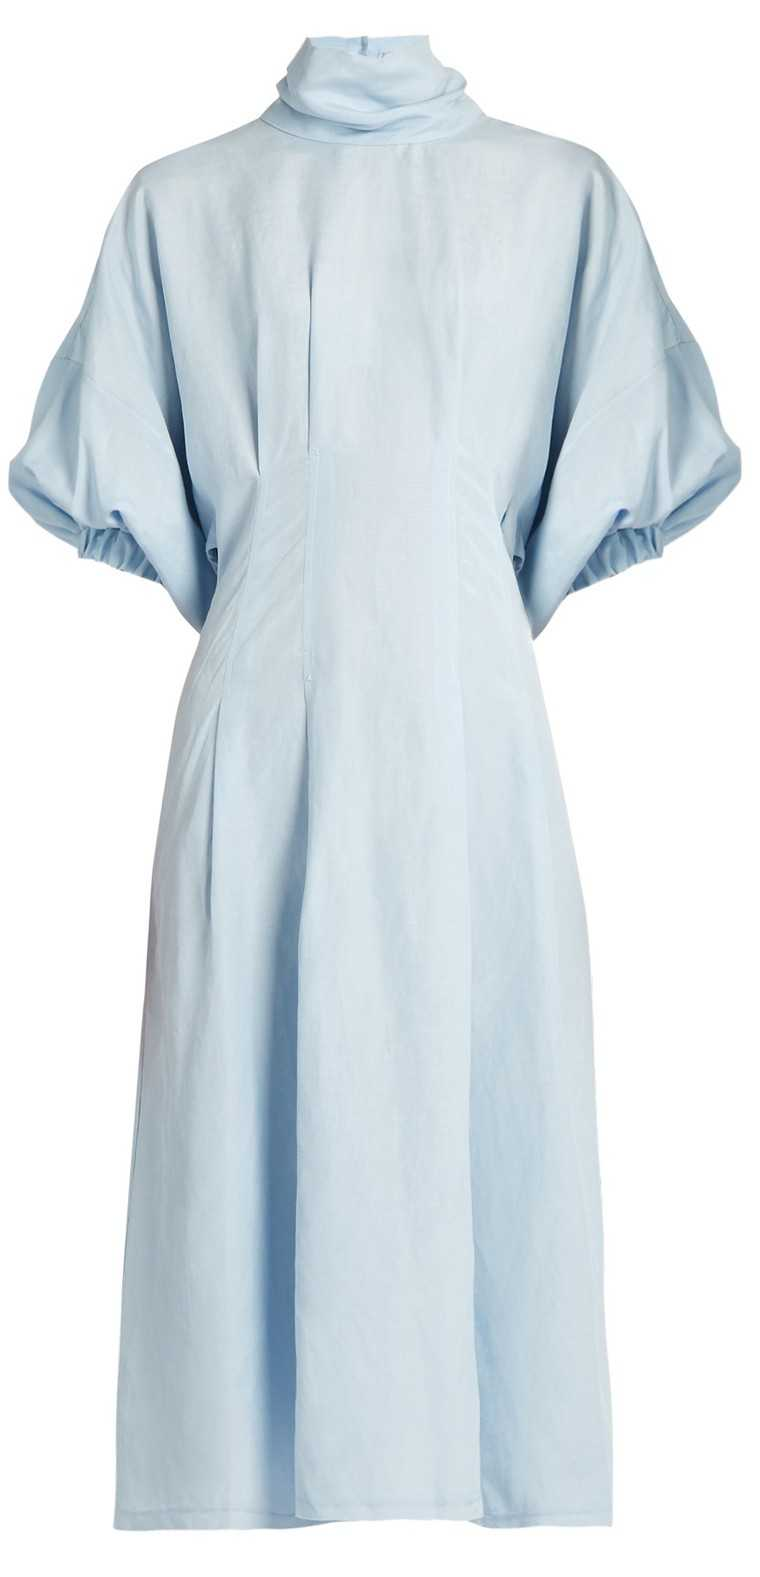 Silk and linen-blend dress, price on request, Rachel Comey @ Matchesfashion.com